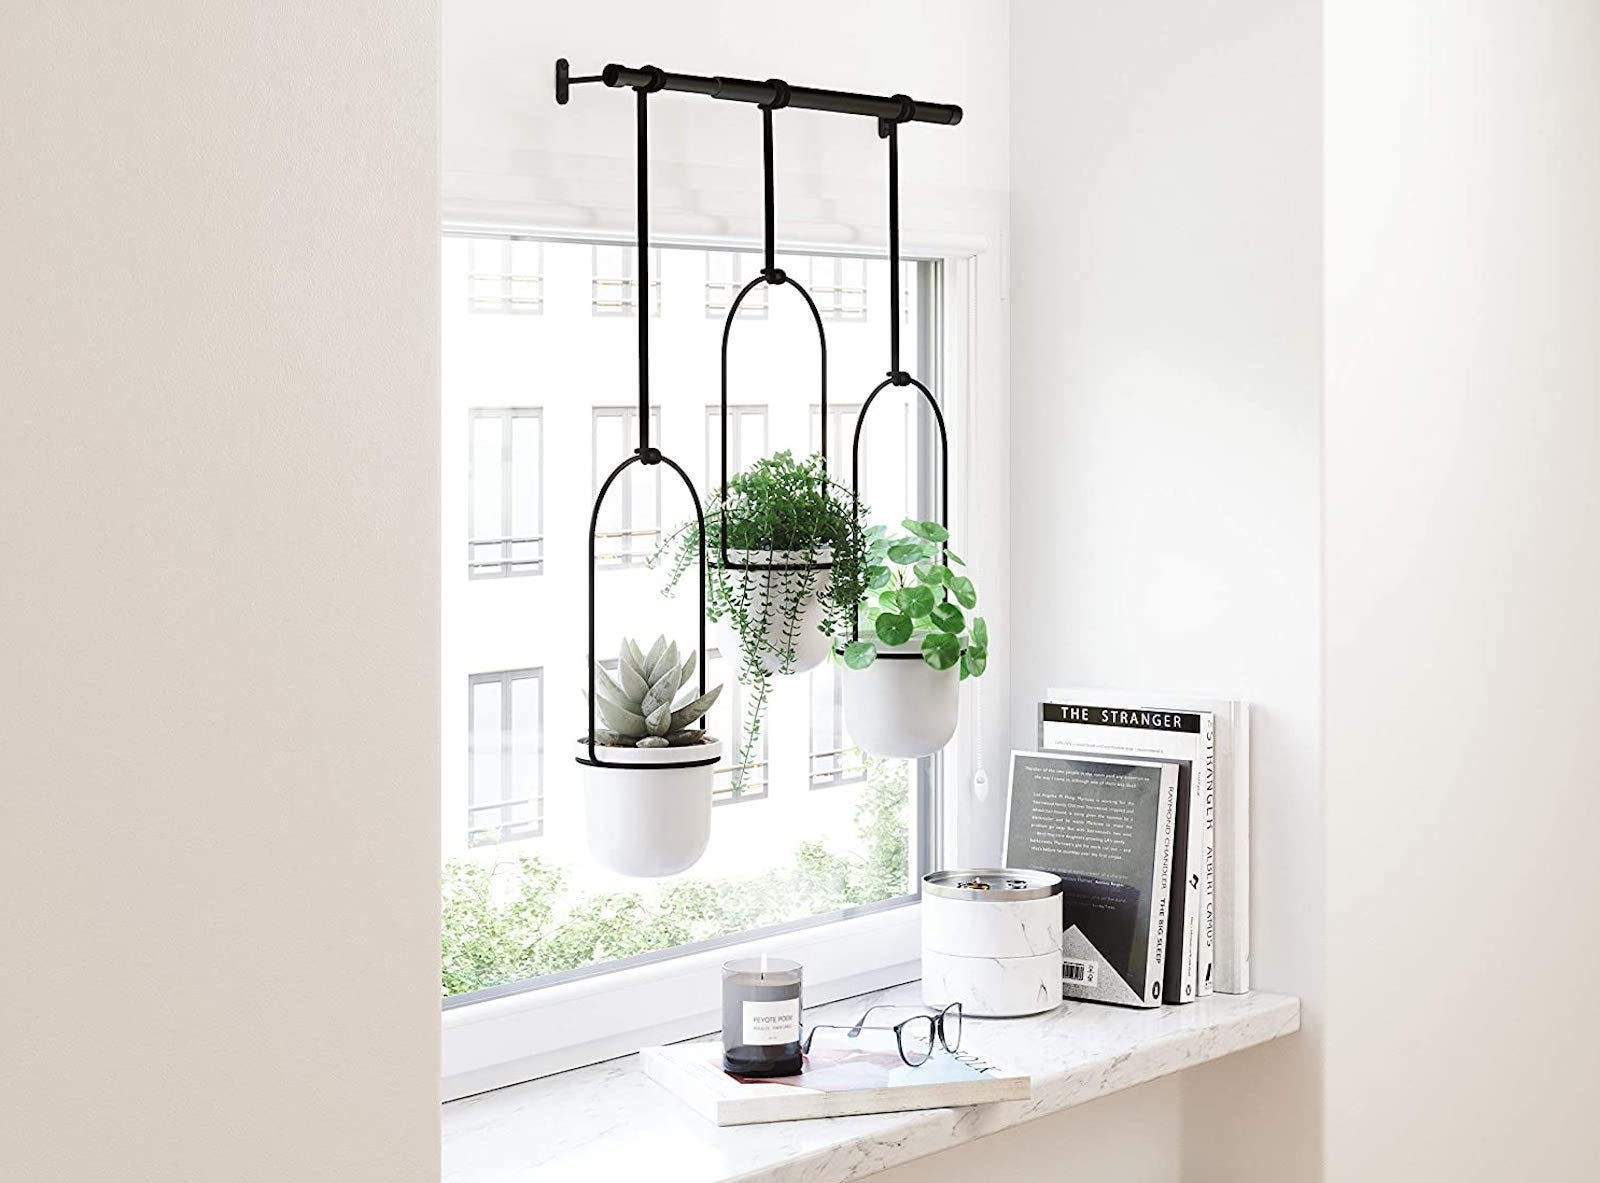 Three white pots hanging from a black window rod in front of a window